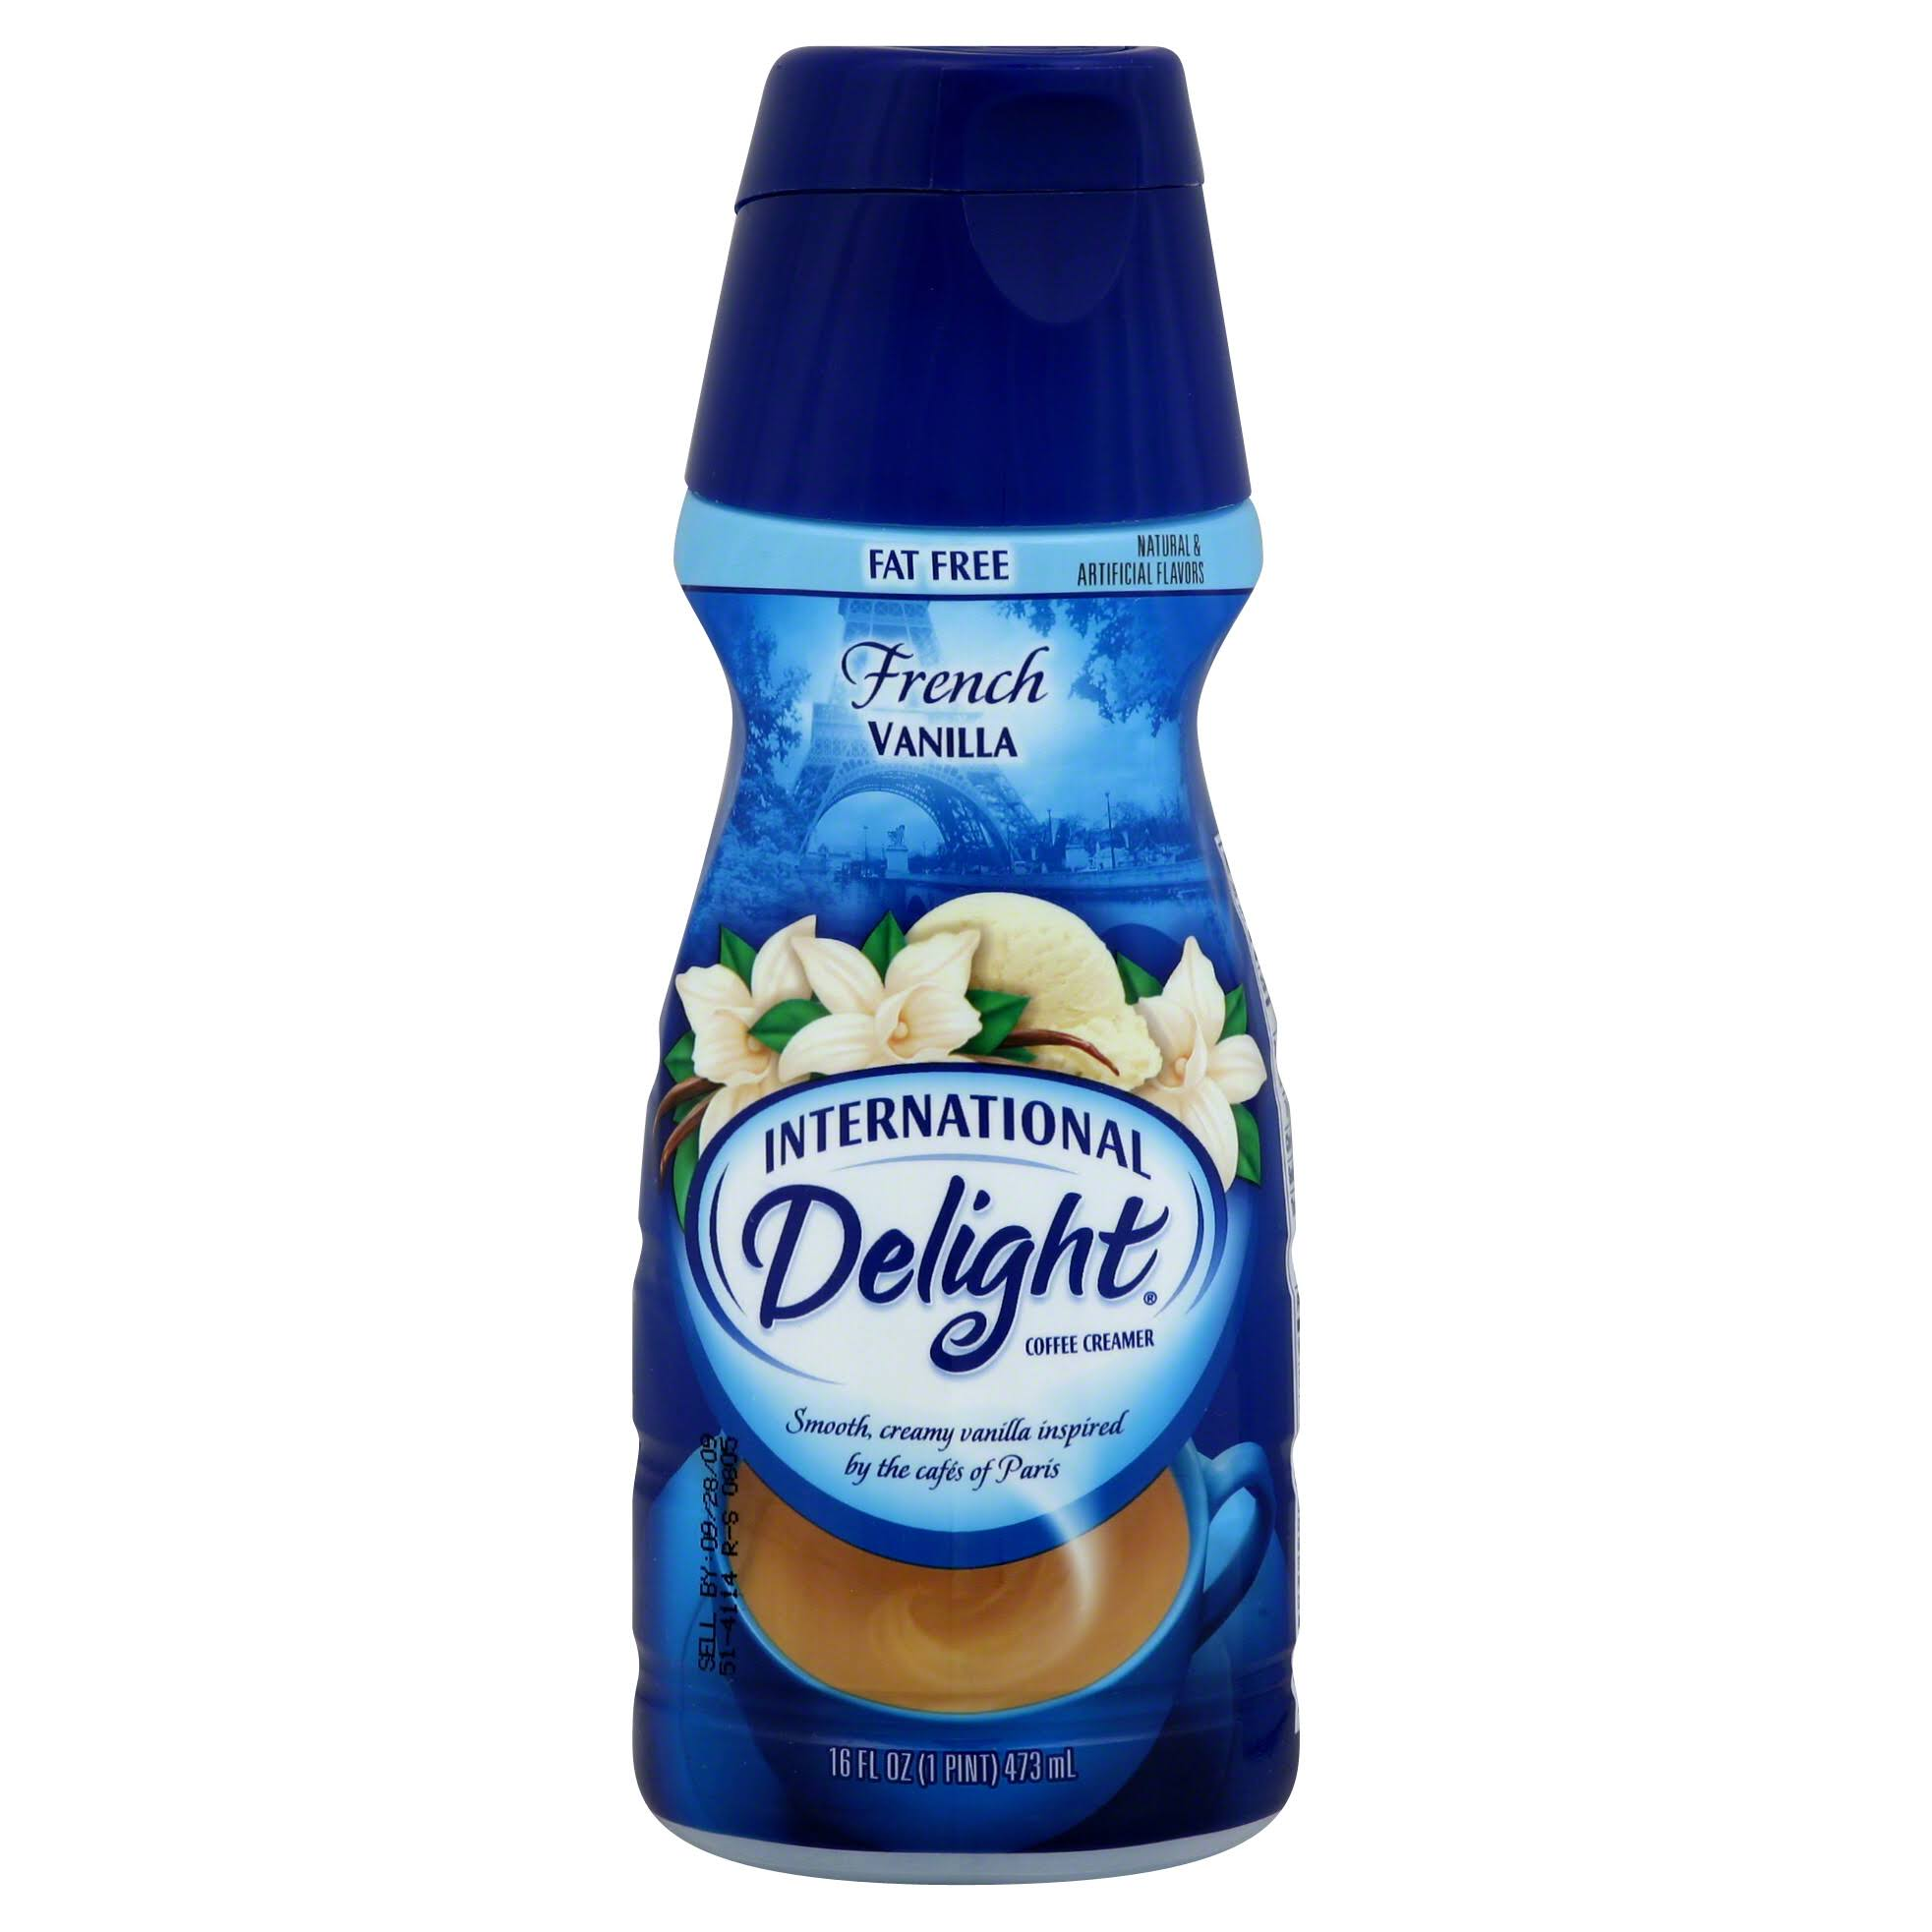 International Delight Gourmet Coffee Creamer - Fat Free, French Vanilla